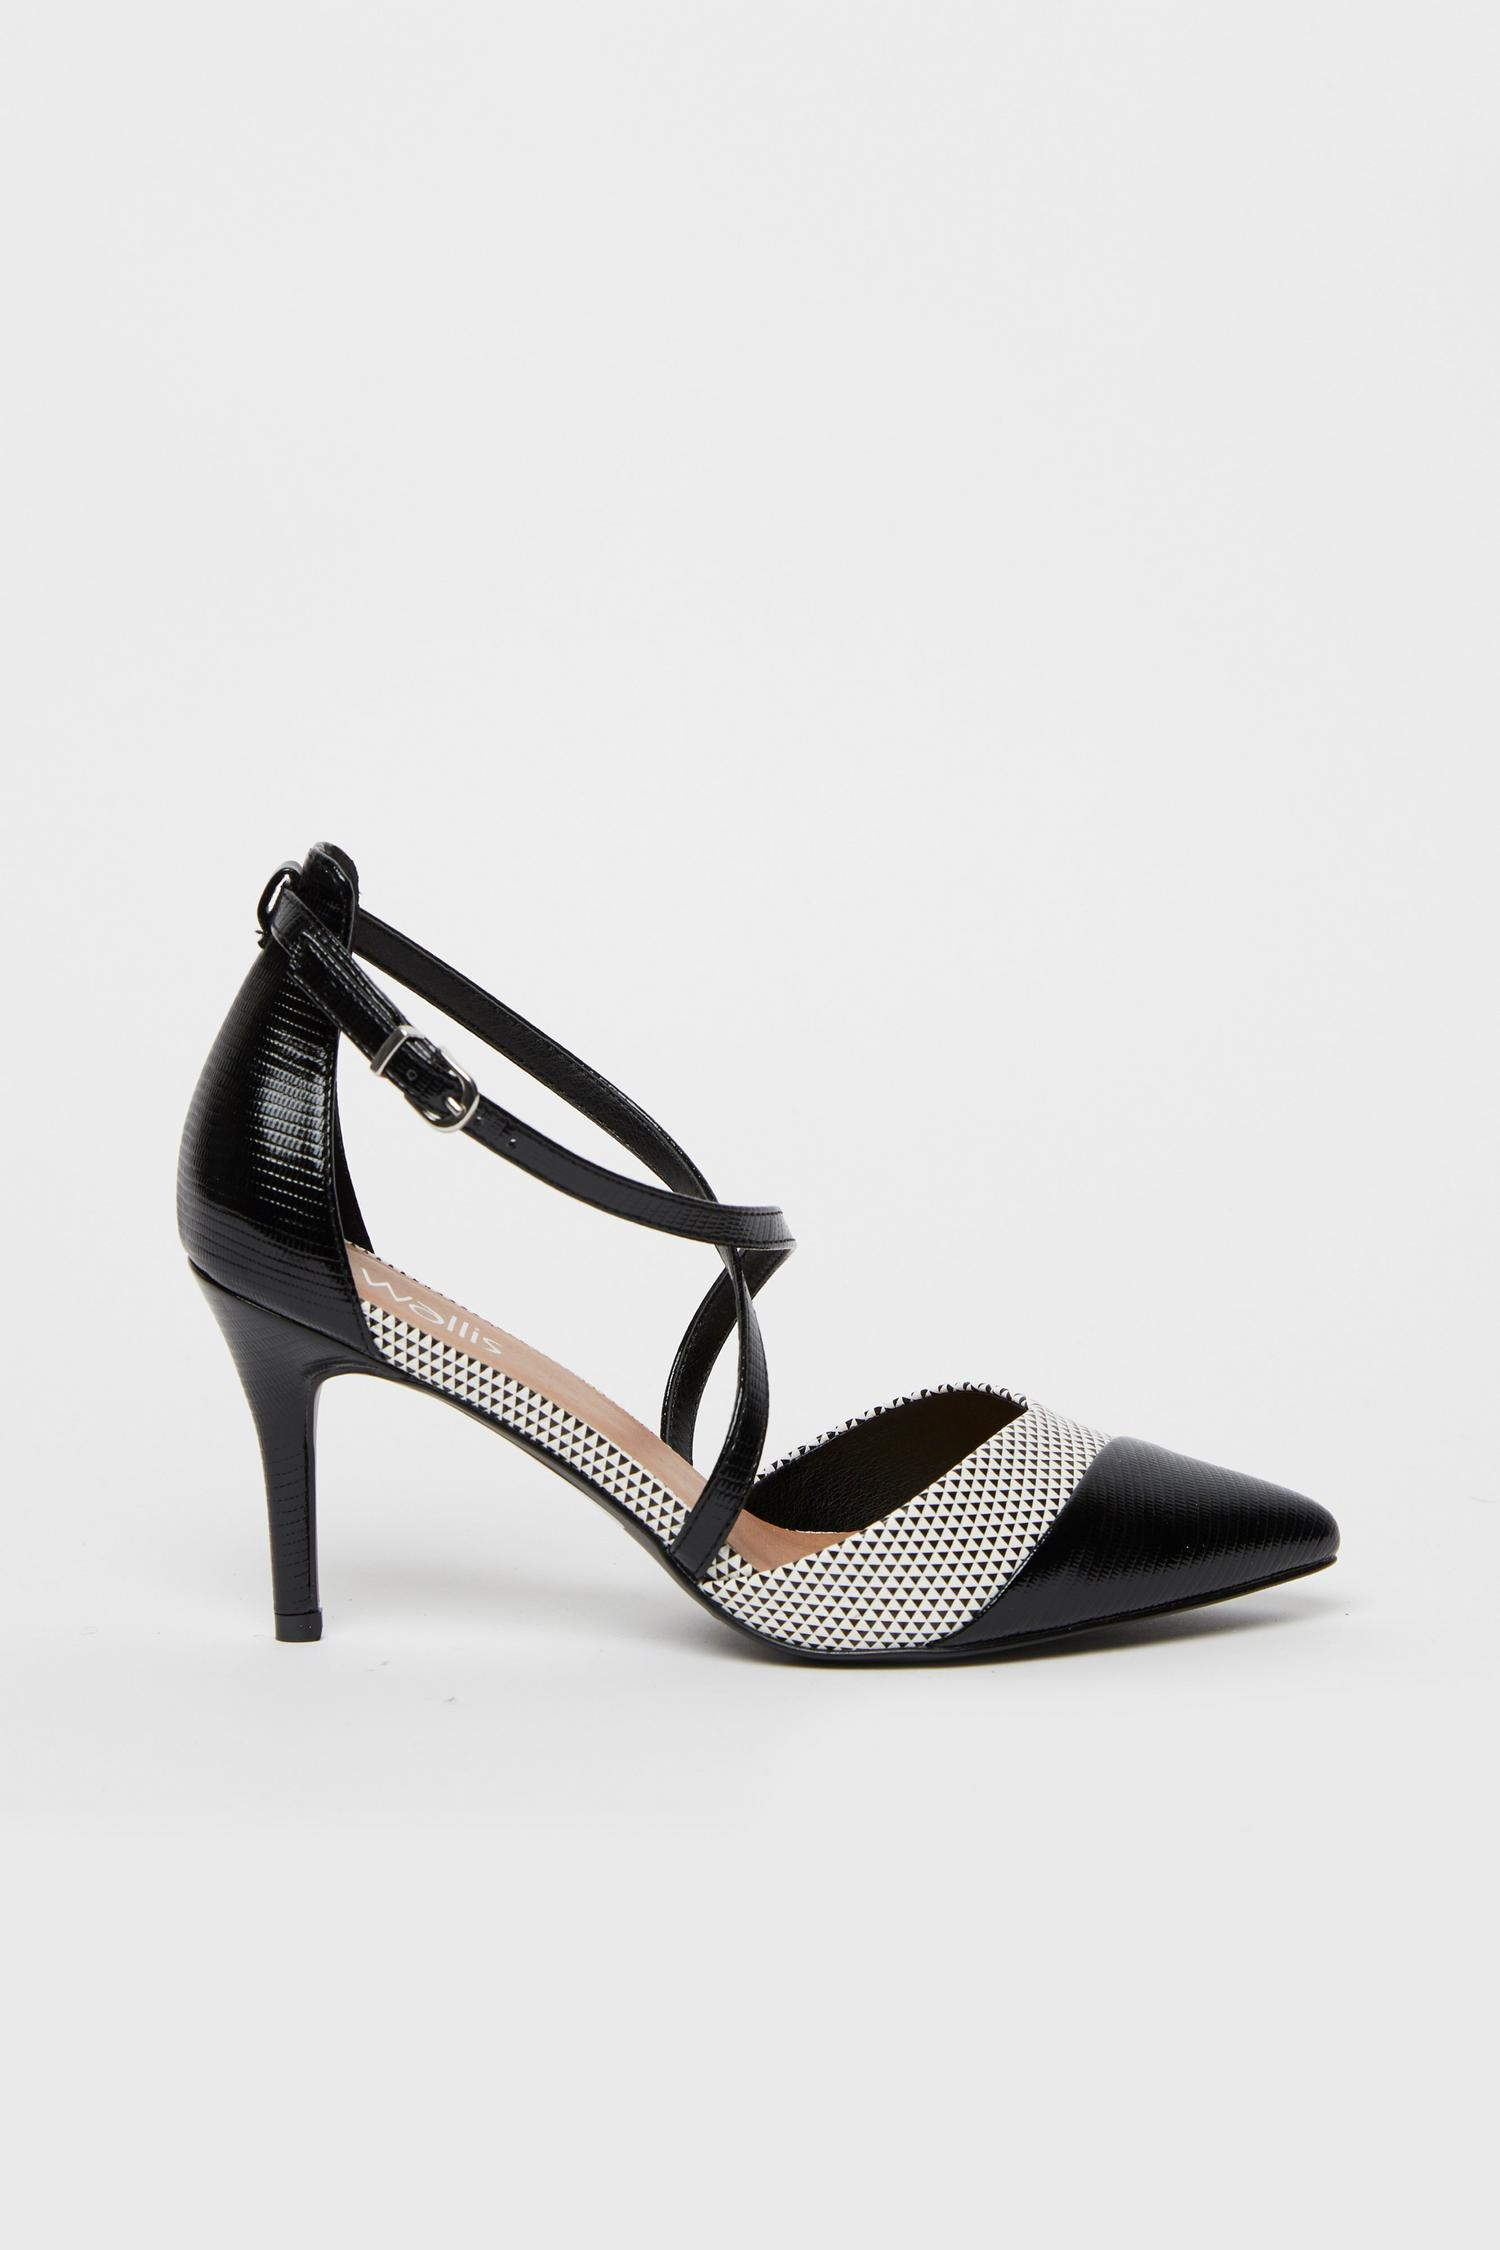 585 Monochrome Cross Strap Heels image number 4